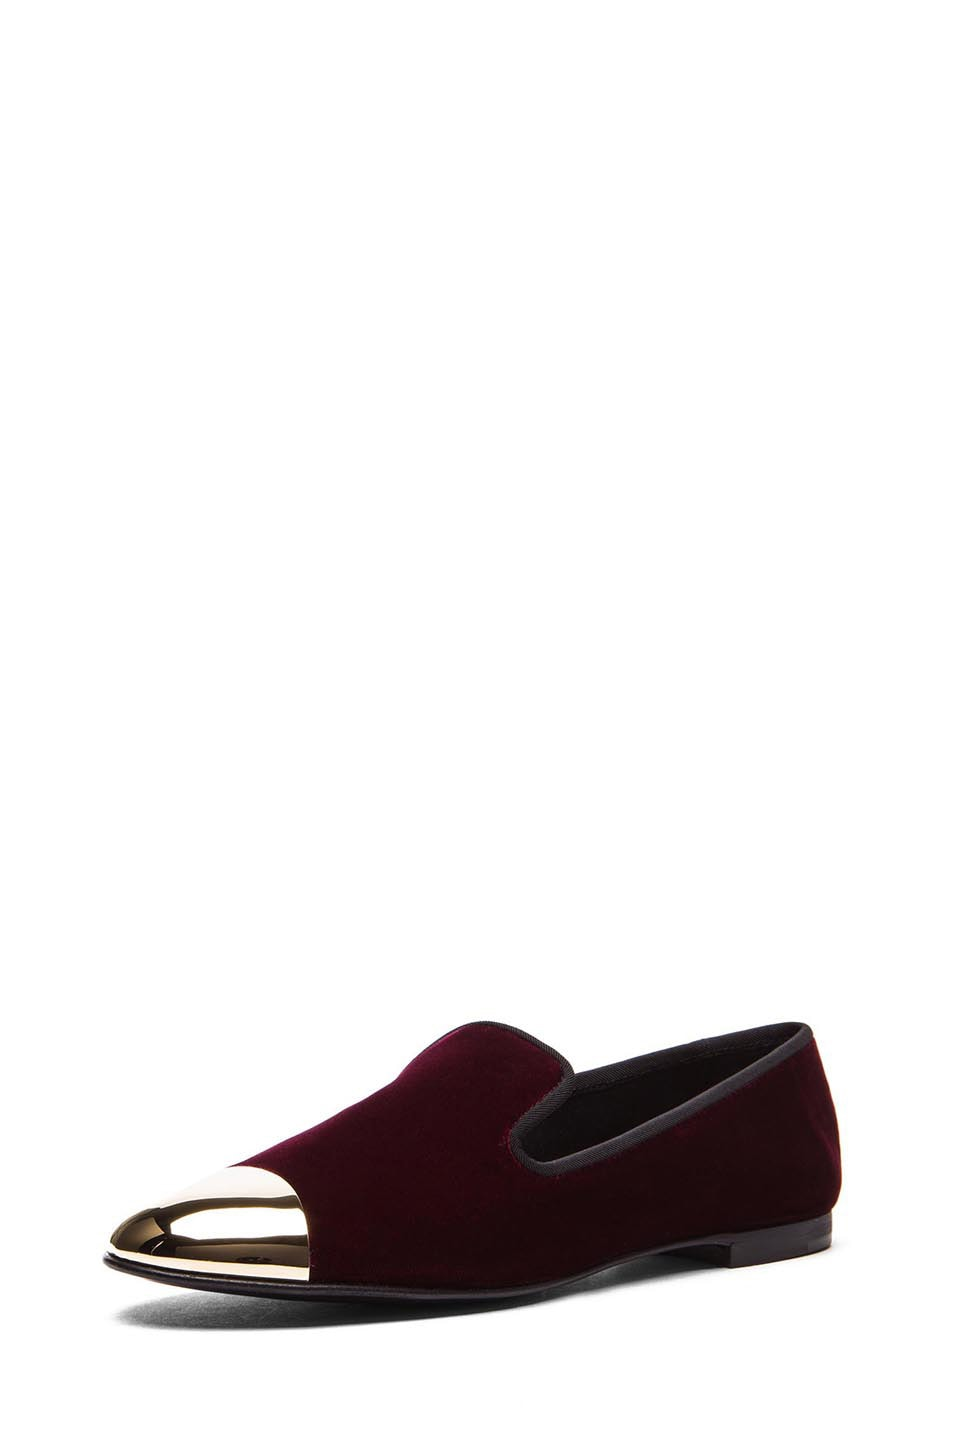 Image 2 of Giuseppe Zanotti Velvet Gold Tipped Flat in Burgundy Velvet